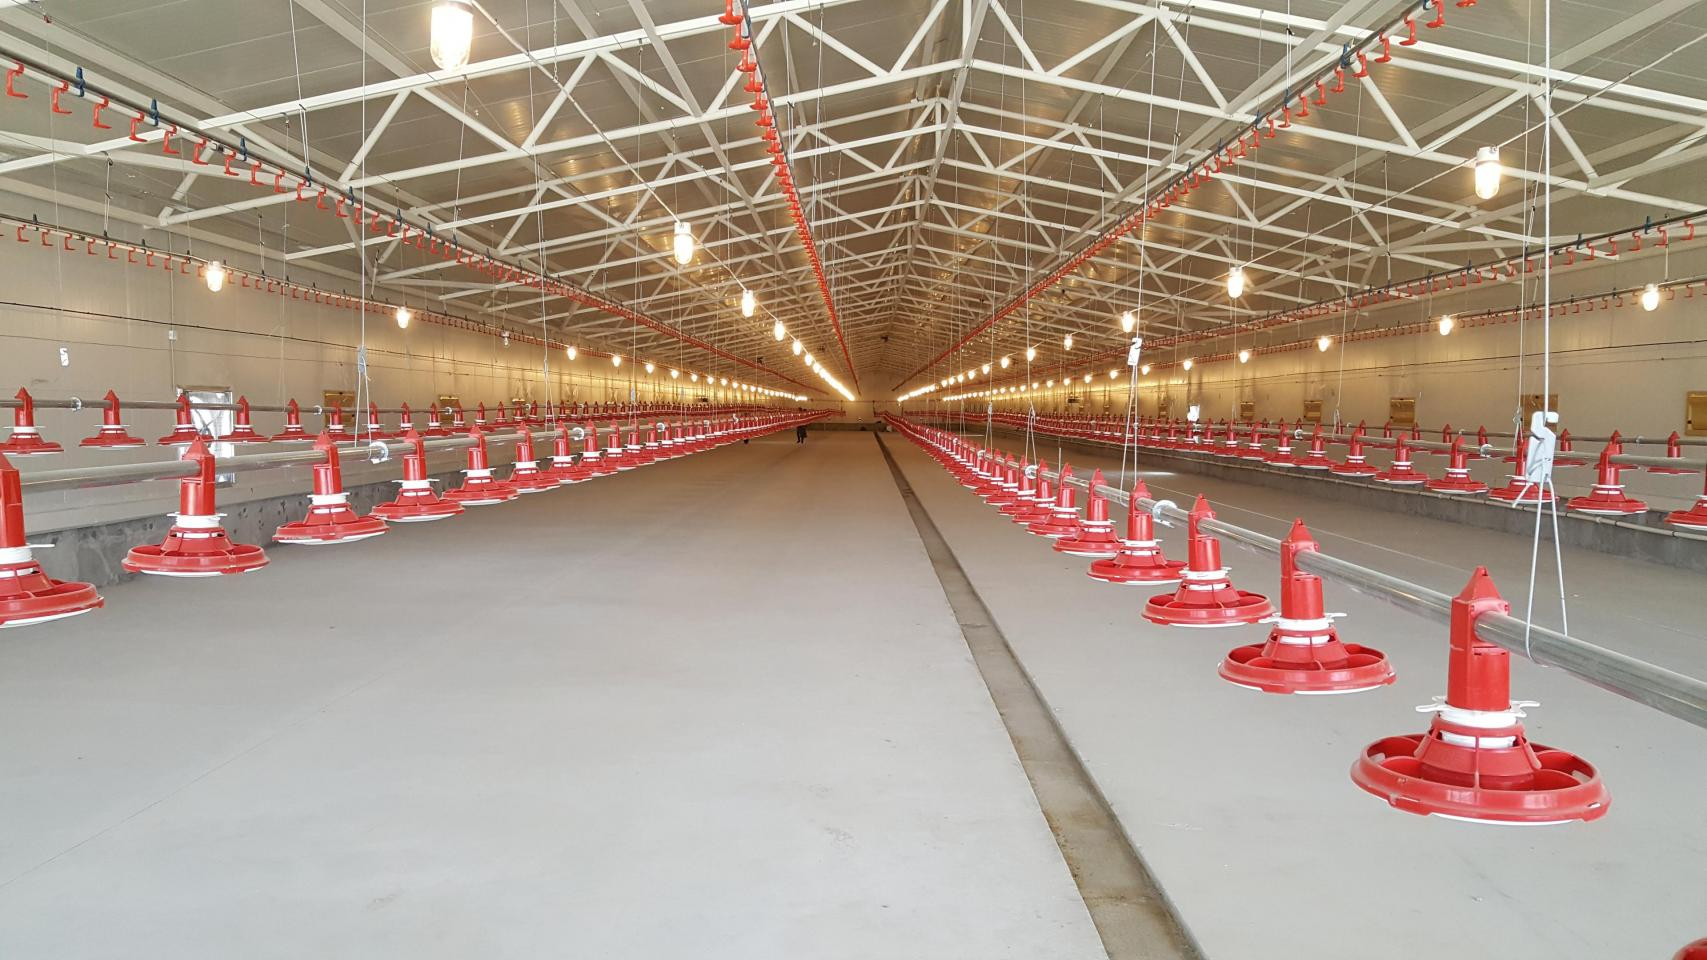 The building dimension  (115 x 15 meters)  makes it very suitable for tunnel ventilation. Each building is equipped with 5 Valènta feeding lines and 6 drinking nipple lines.